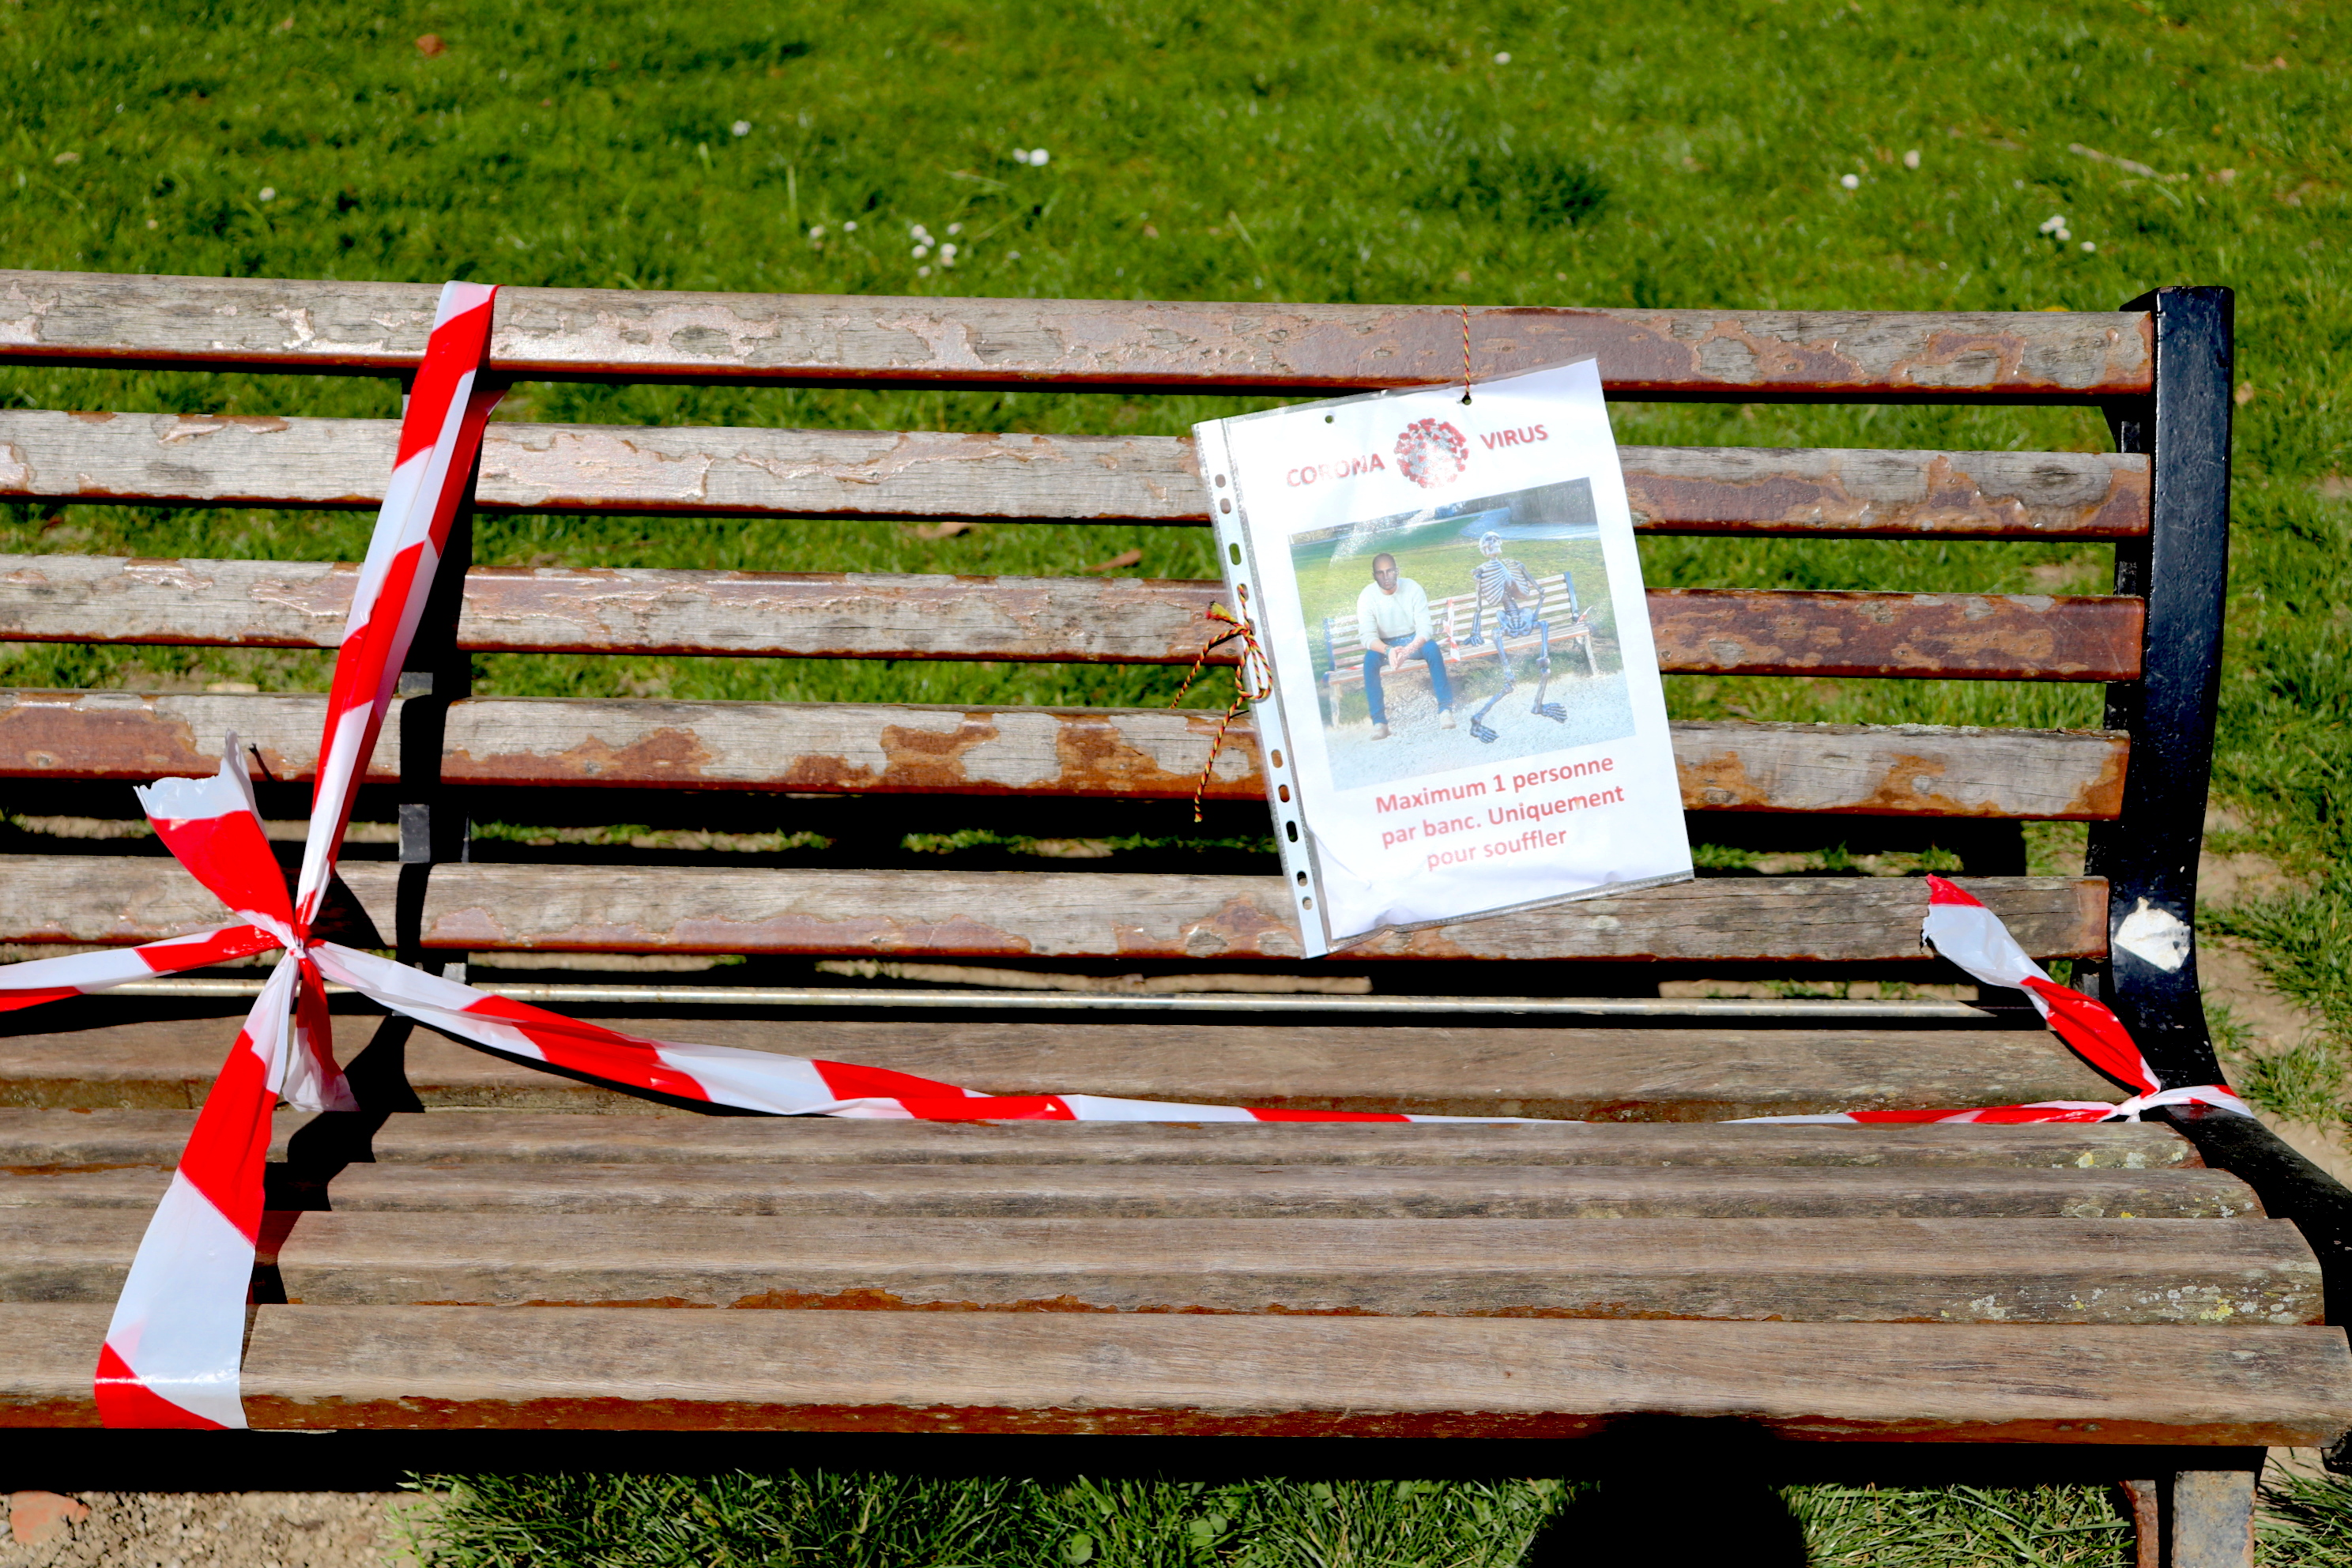 park bench with poster telling visitors to keep physical distance or become a sceleton